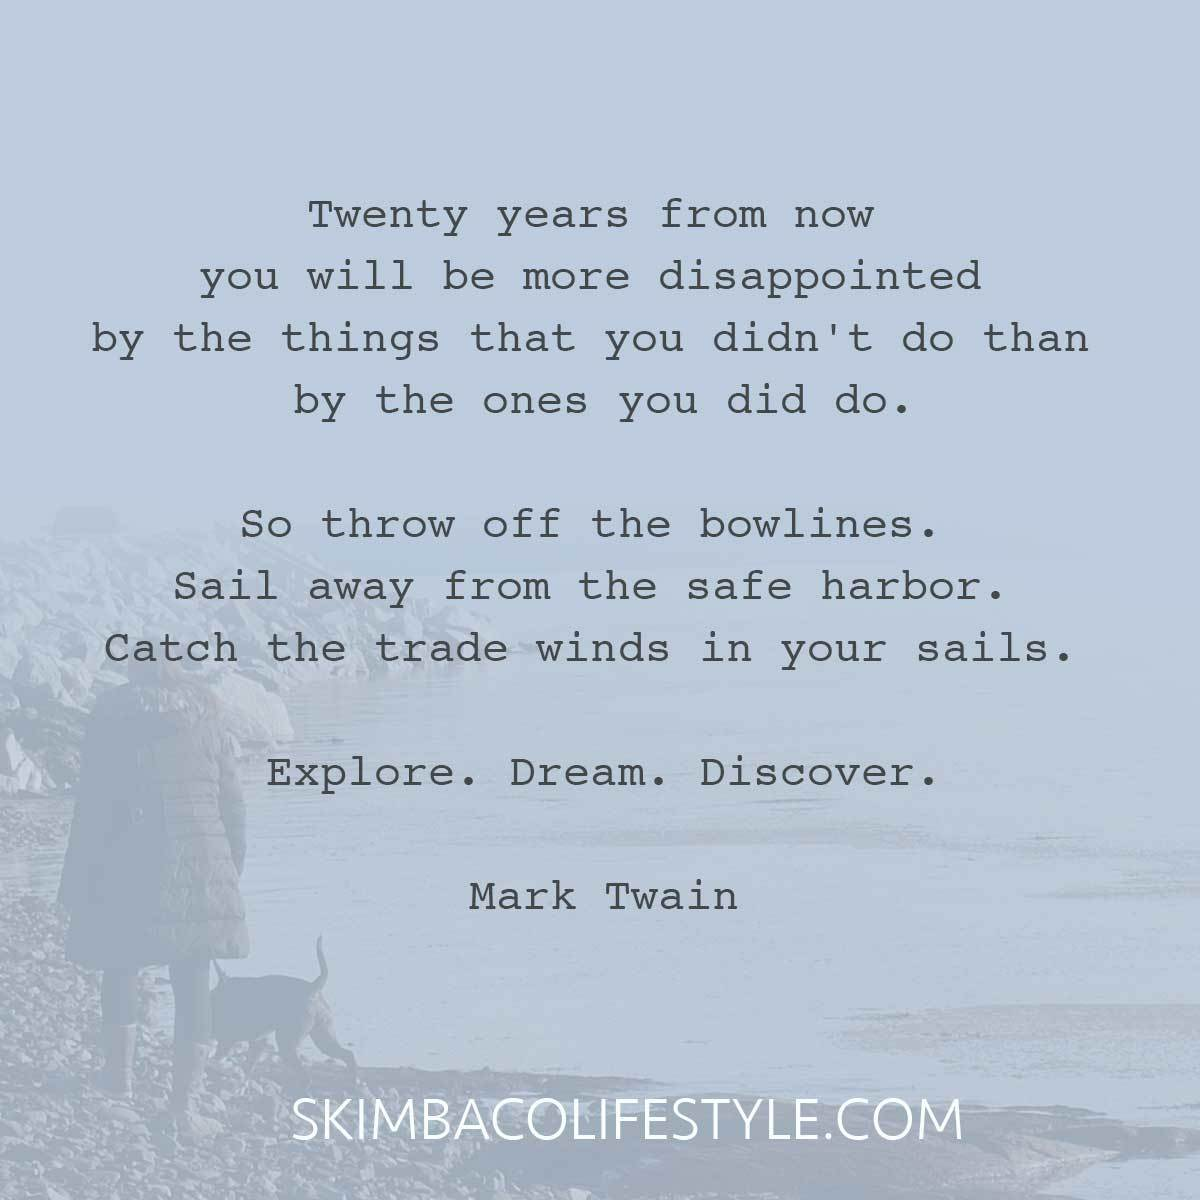 """Twenty years from now you will be more disappointed by the things that you didn't do than by the ones you did do. So throw off the bowlines. Sail away from the safe harbor. Catch the trade winds in your sails. Explore. Dream. Discover."" Mark Twain quote @skimbaco"